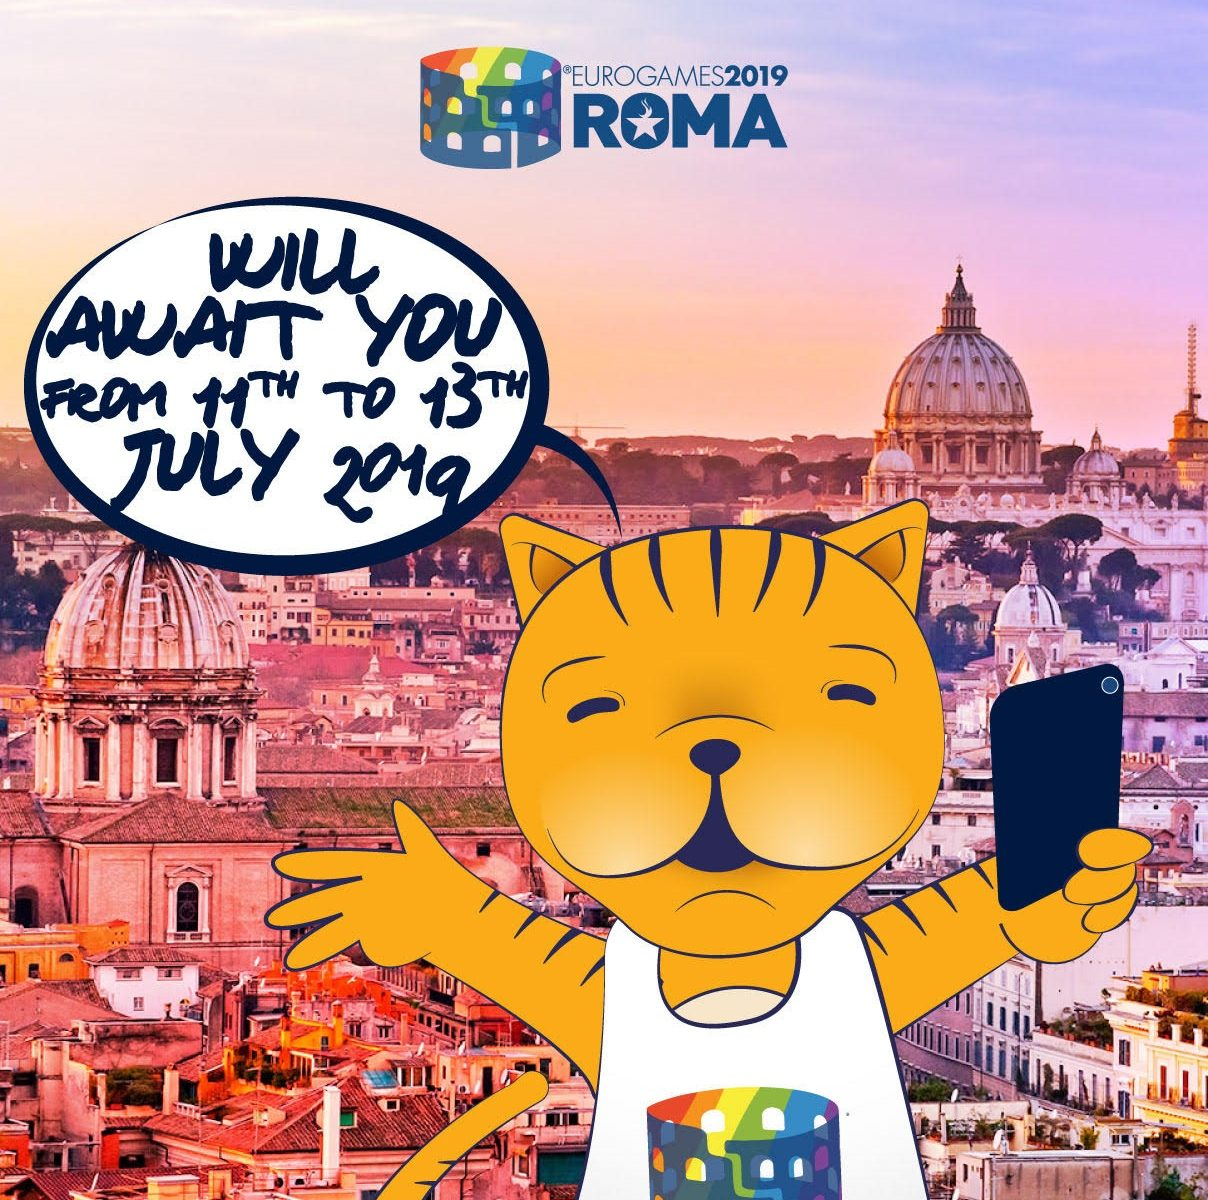 Roma will await you